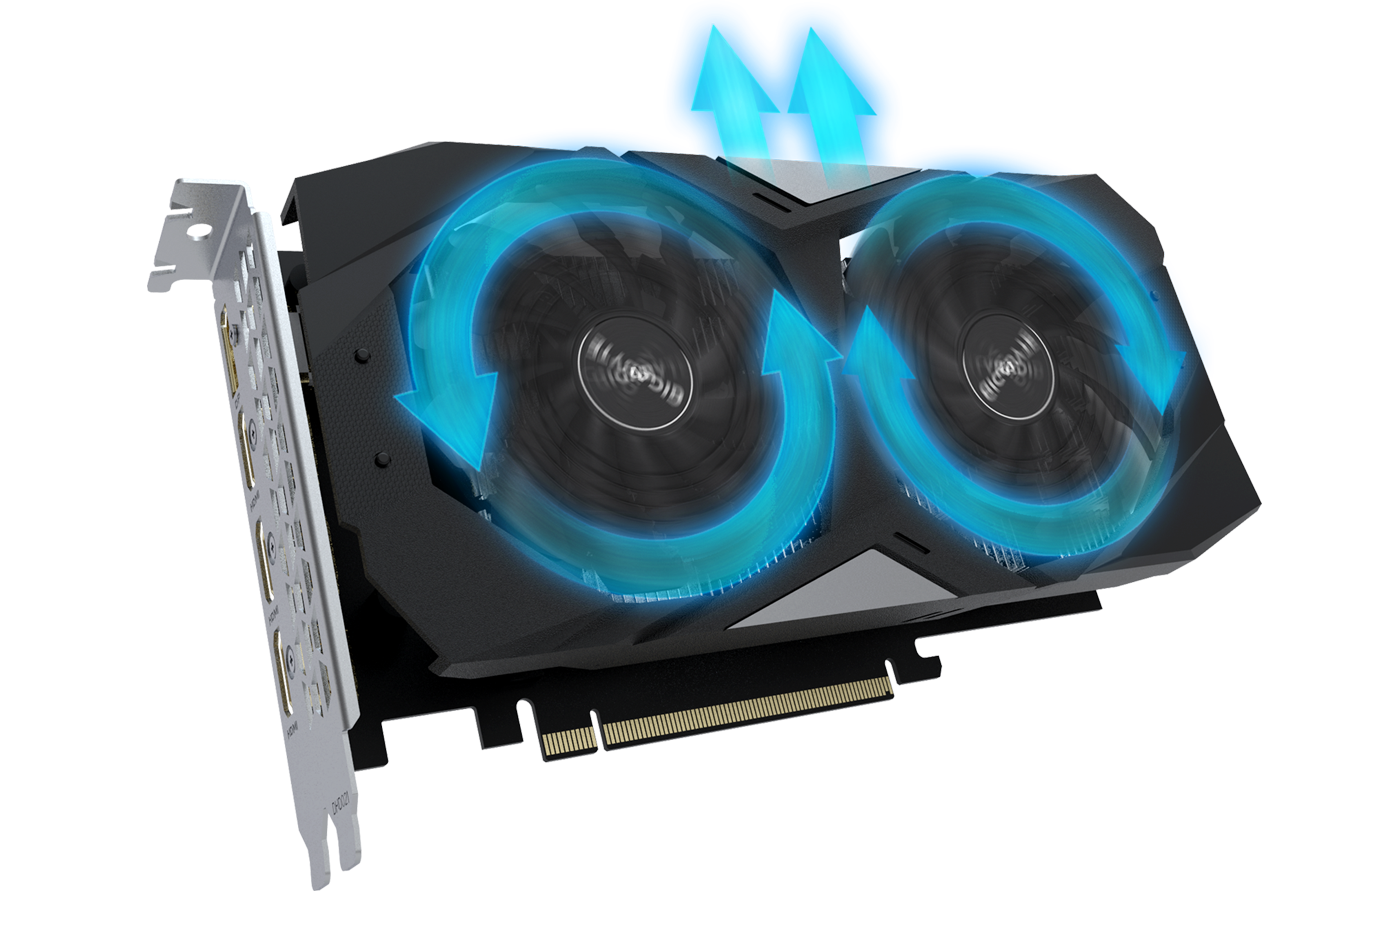 GIGABYTE GV-N1650WF2OC-4GD graphics card angled up to the right with blue graphics showing the airflow its spinning fans create